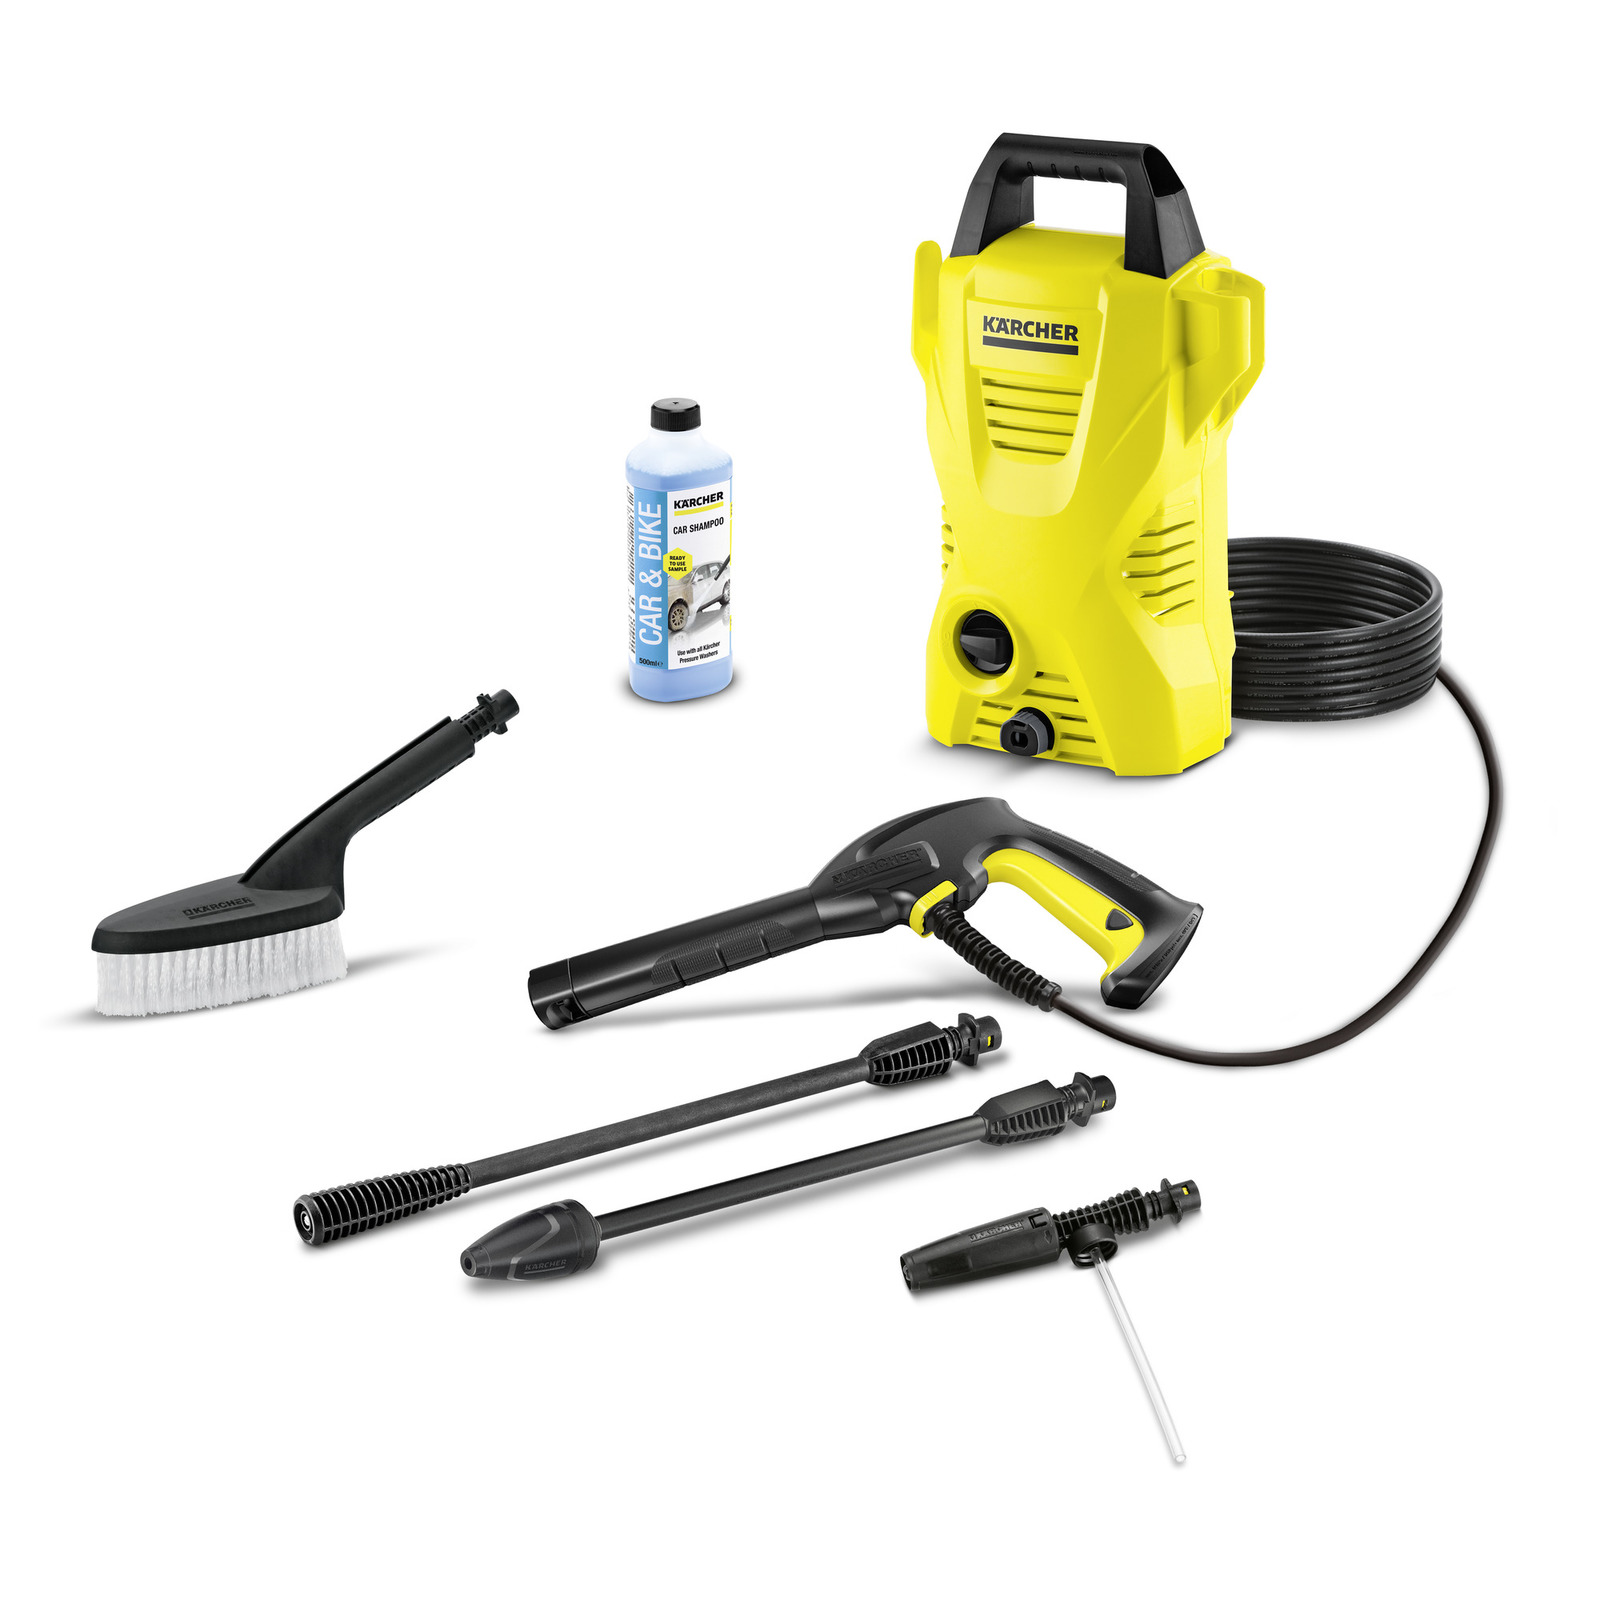 Lot 30451 - V Brand New Karcher K2 Compact Car High Pressure Cleaner With Wash Brush - Foam Nozzle & Car Shampoo